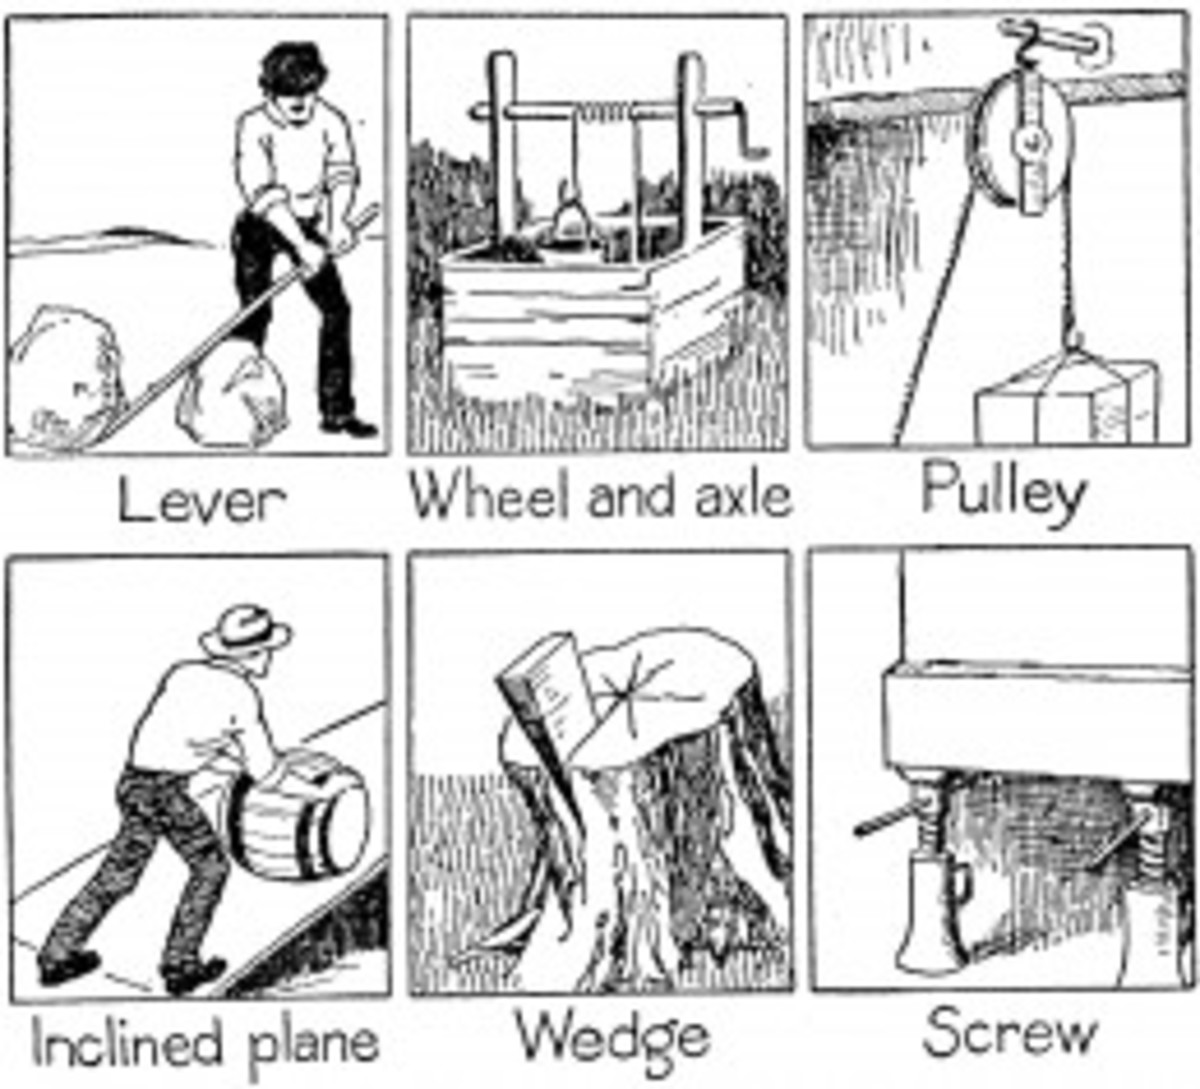 wheels-and-axles-lesson-plan-in-simple-machines-unit